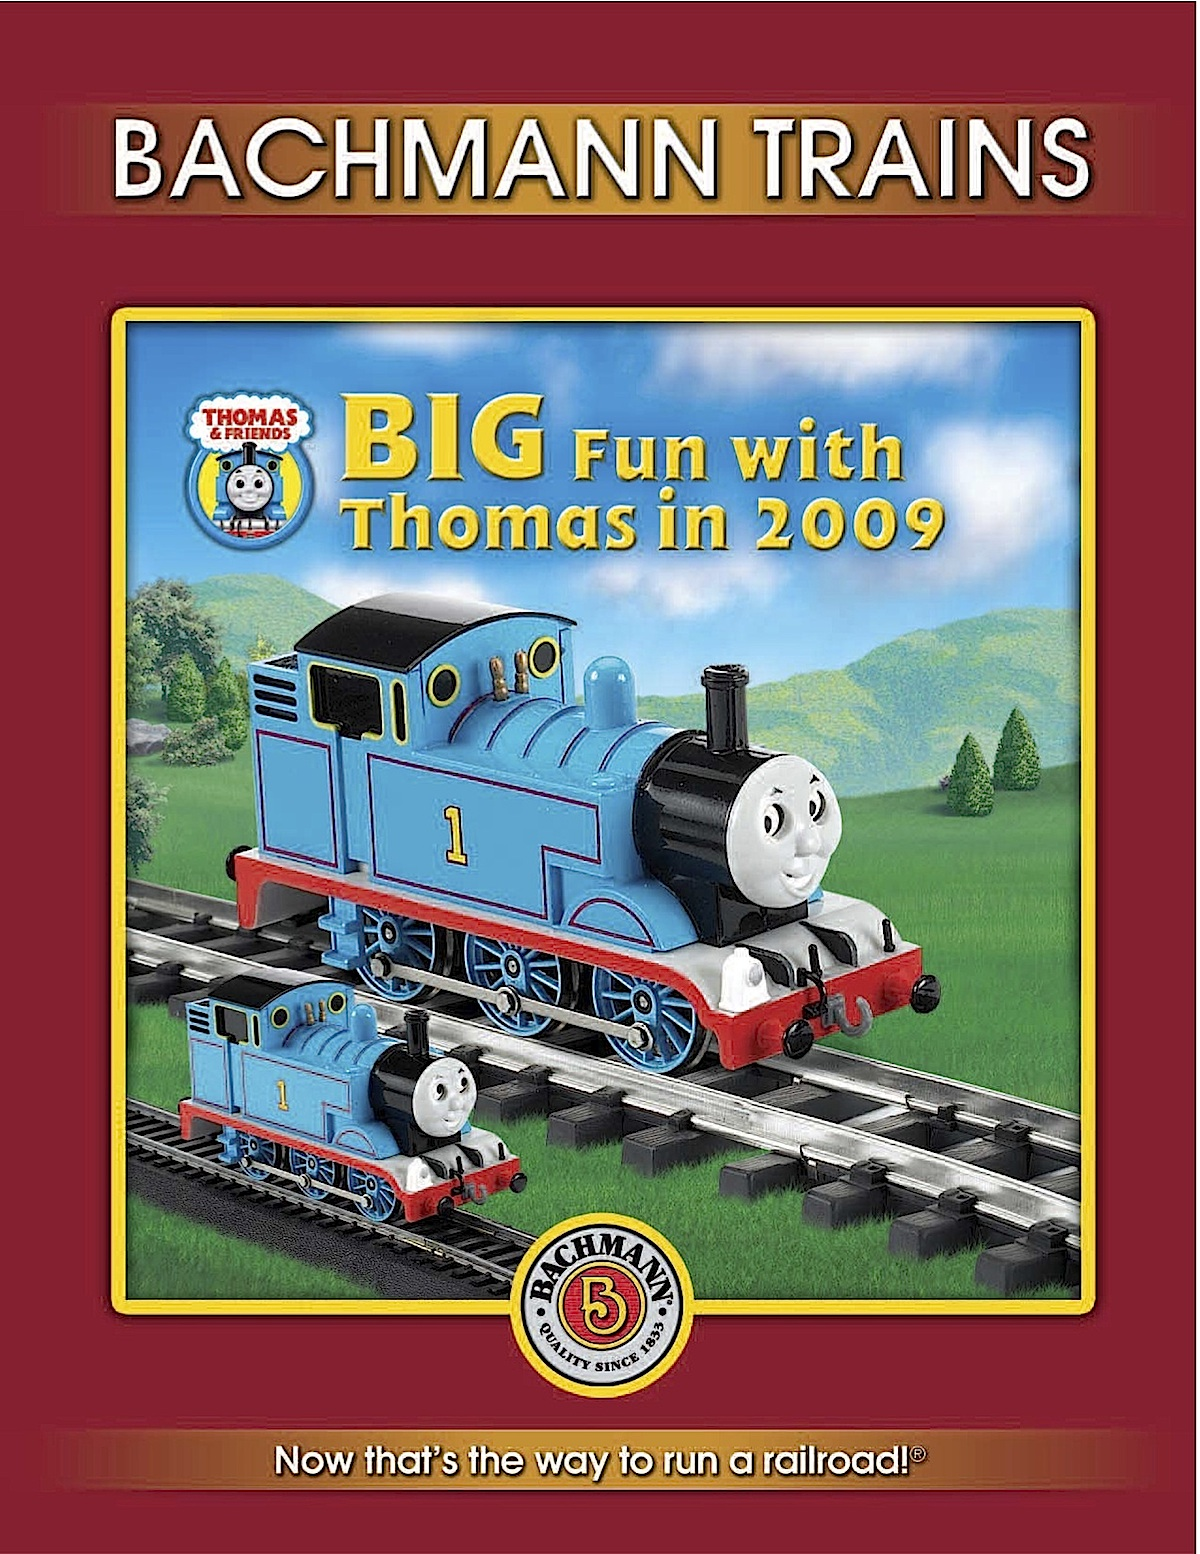 Bachmann Trains Katalog (Catalogue) 2009